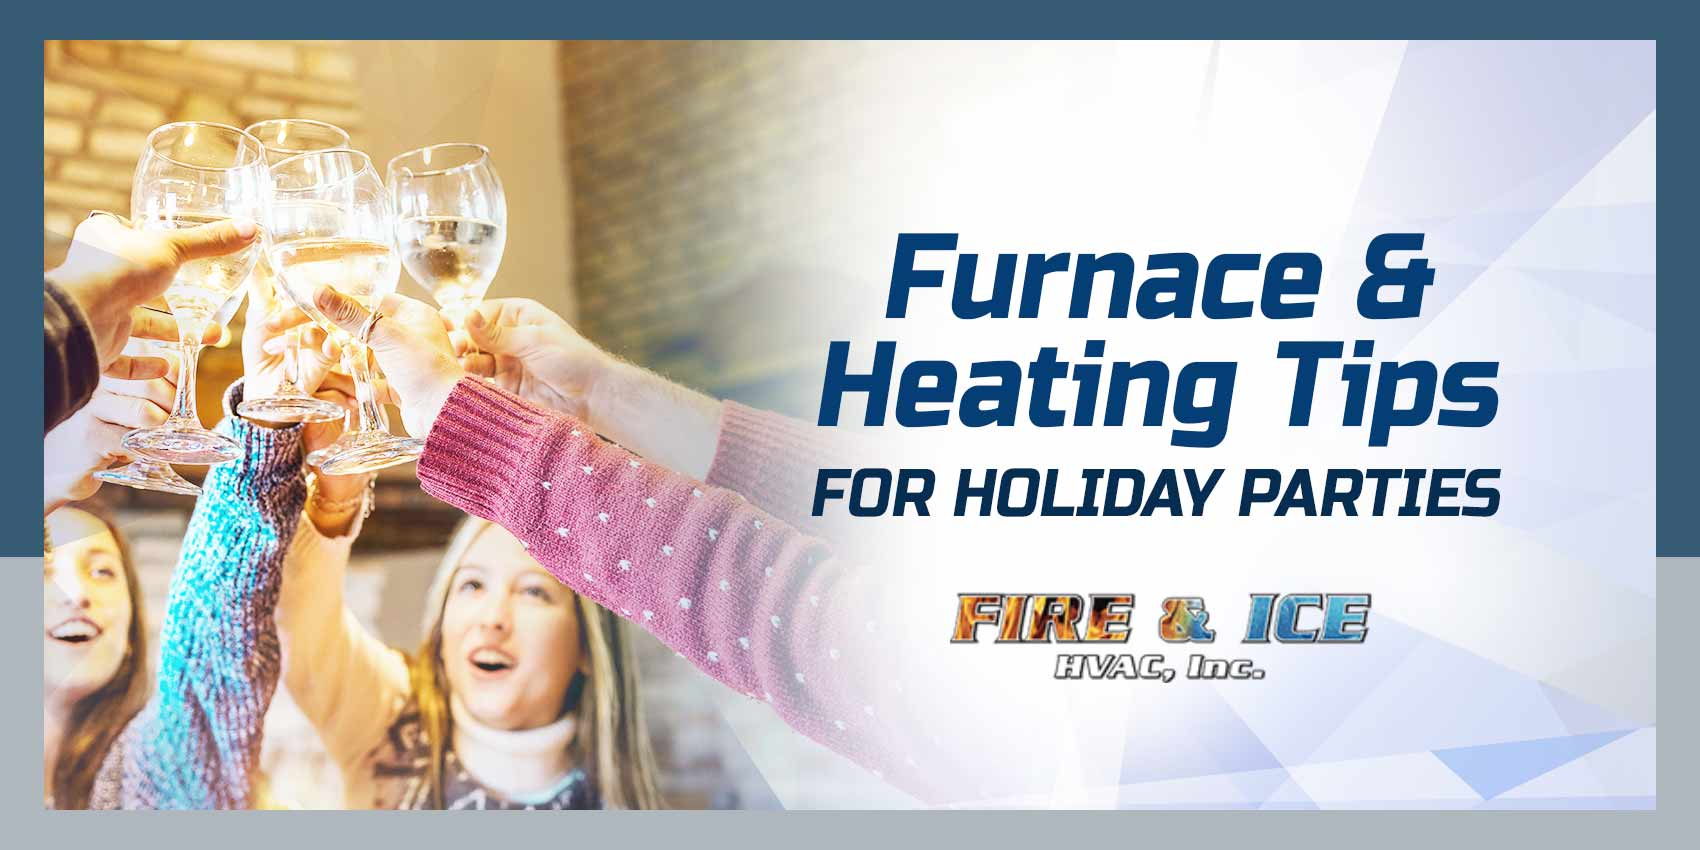 Furnace & Heating Tips for Holiday Parties